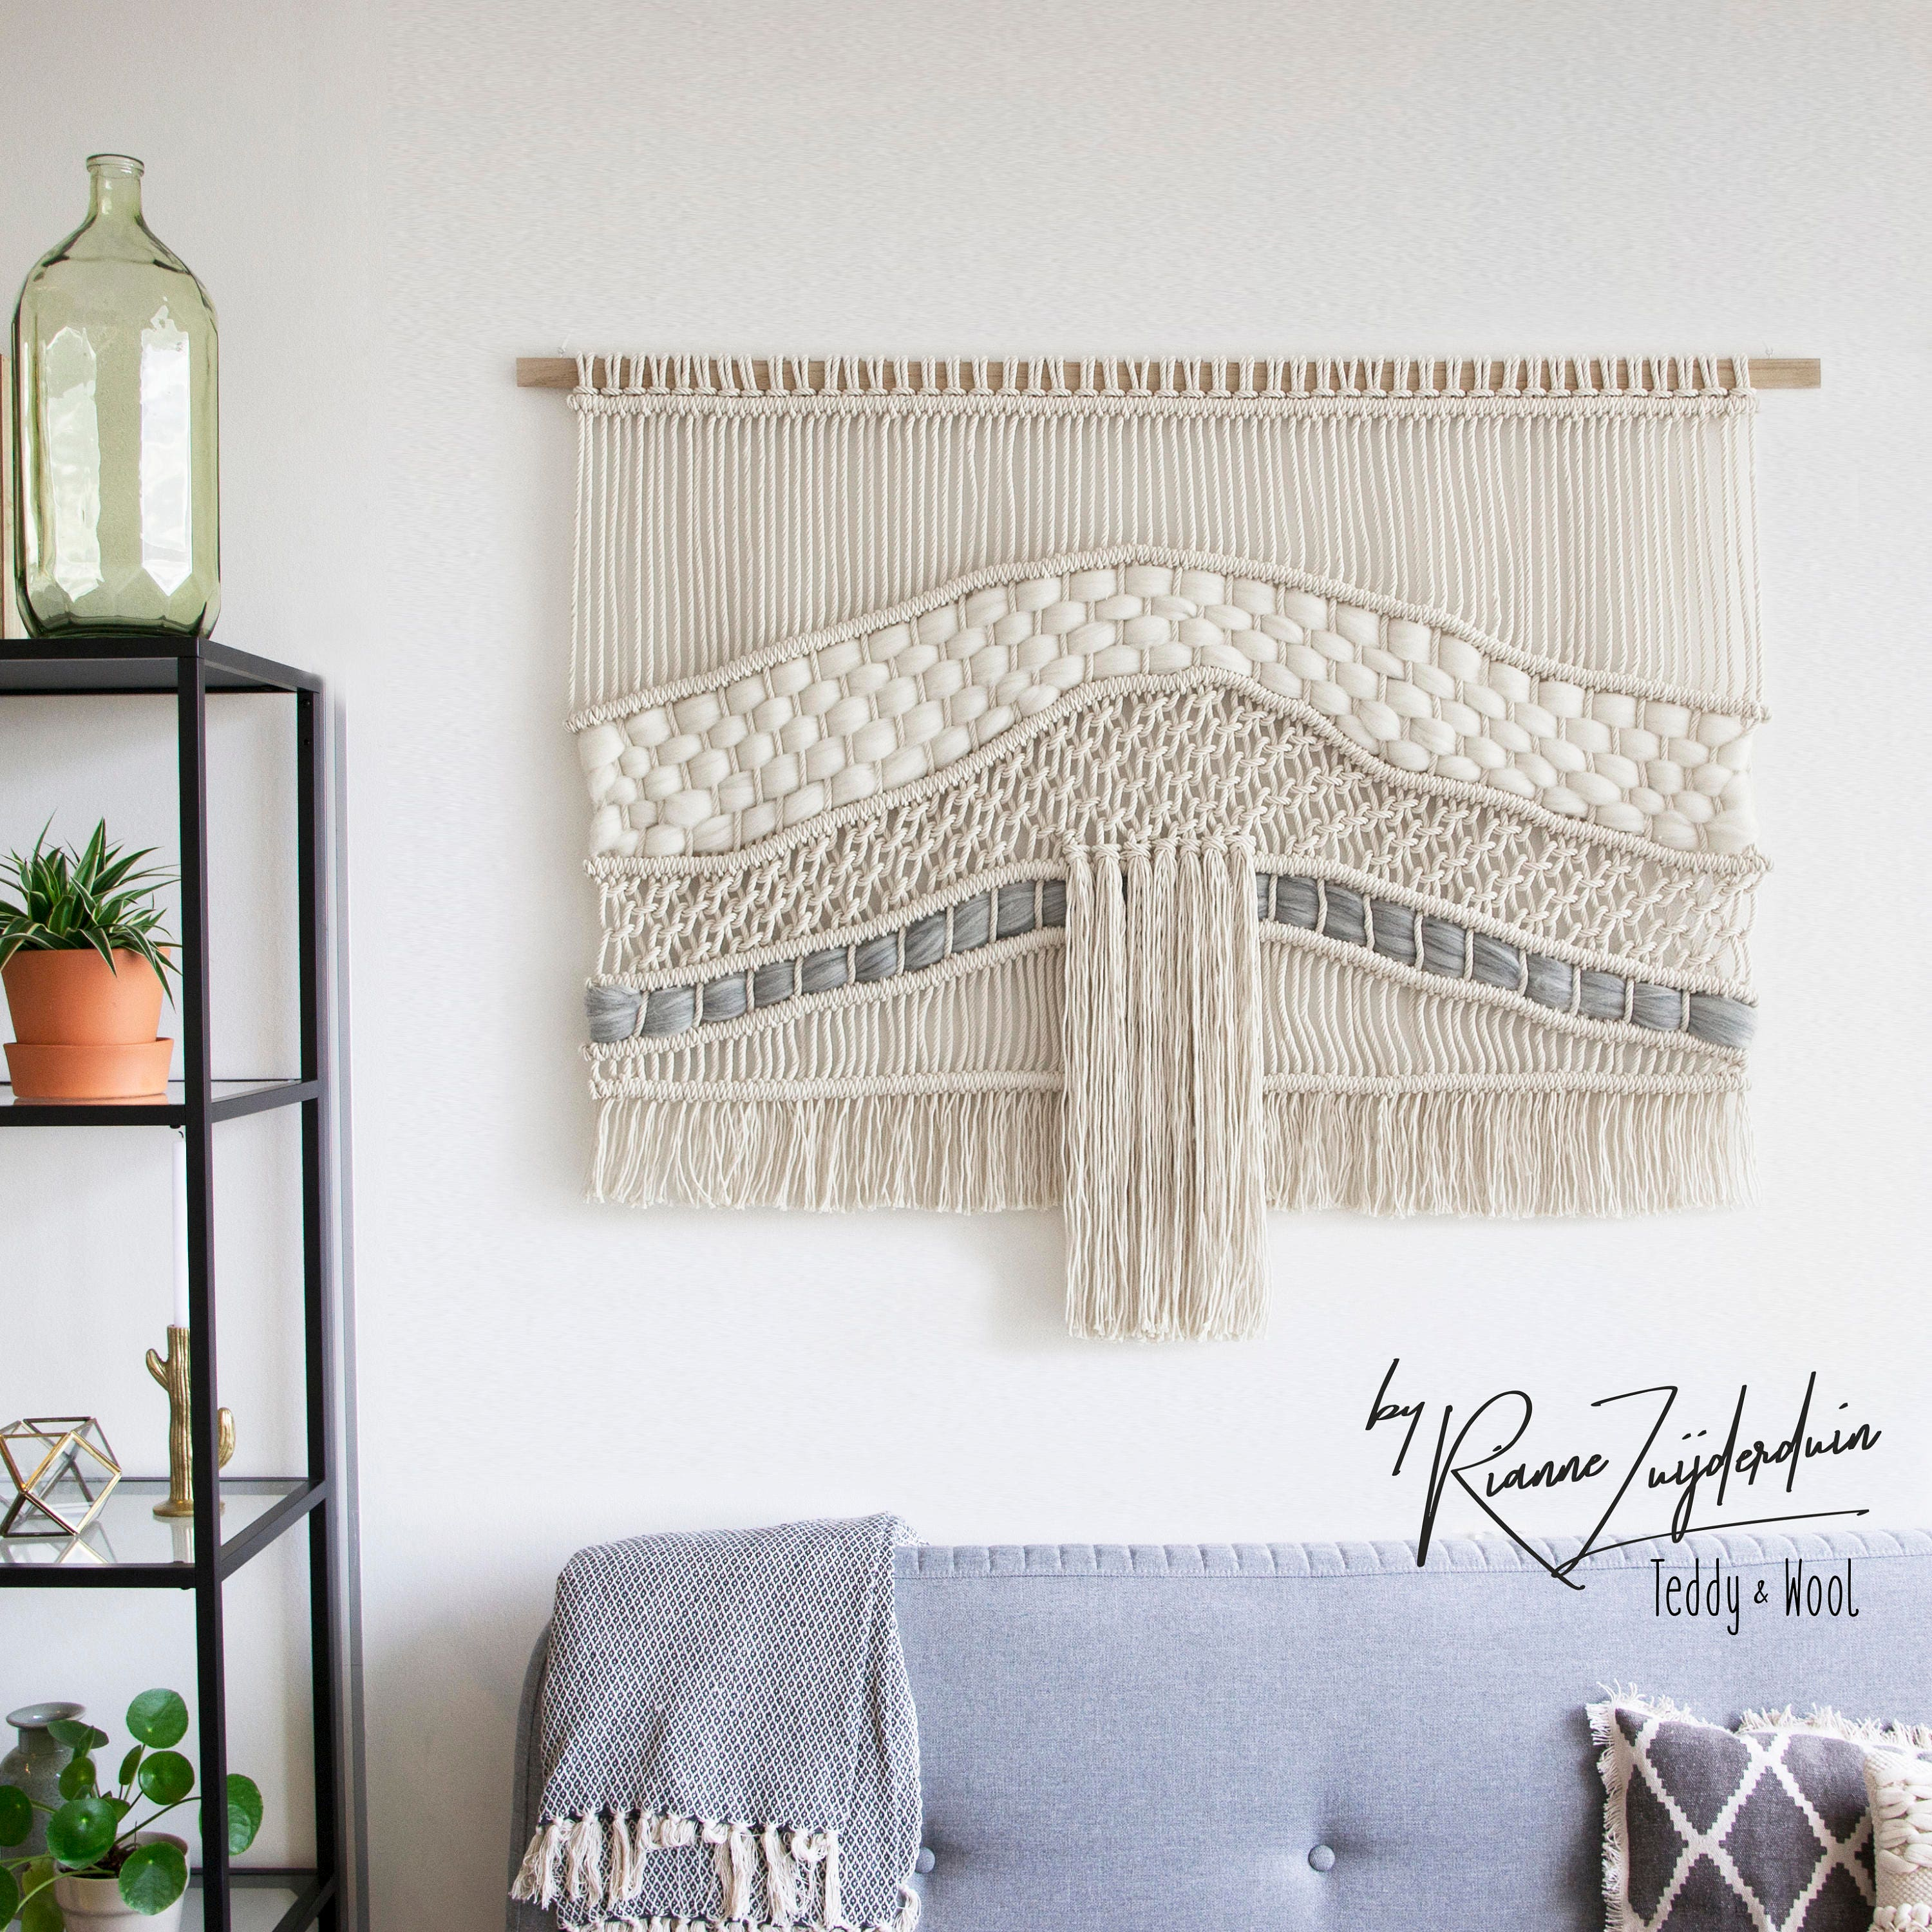 Large Wall Hangings Magnificent Large Wall Hangings  T E D D Y A N D W O O L Design Decoration